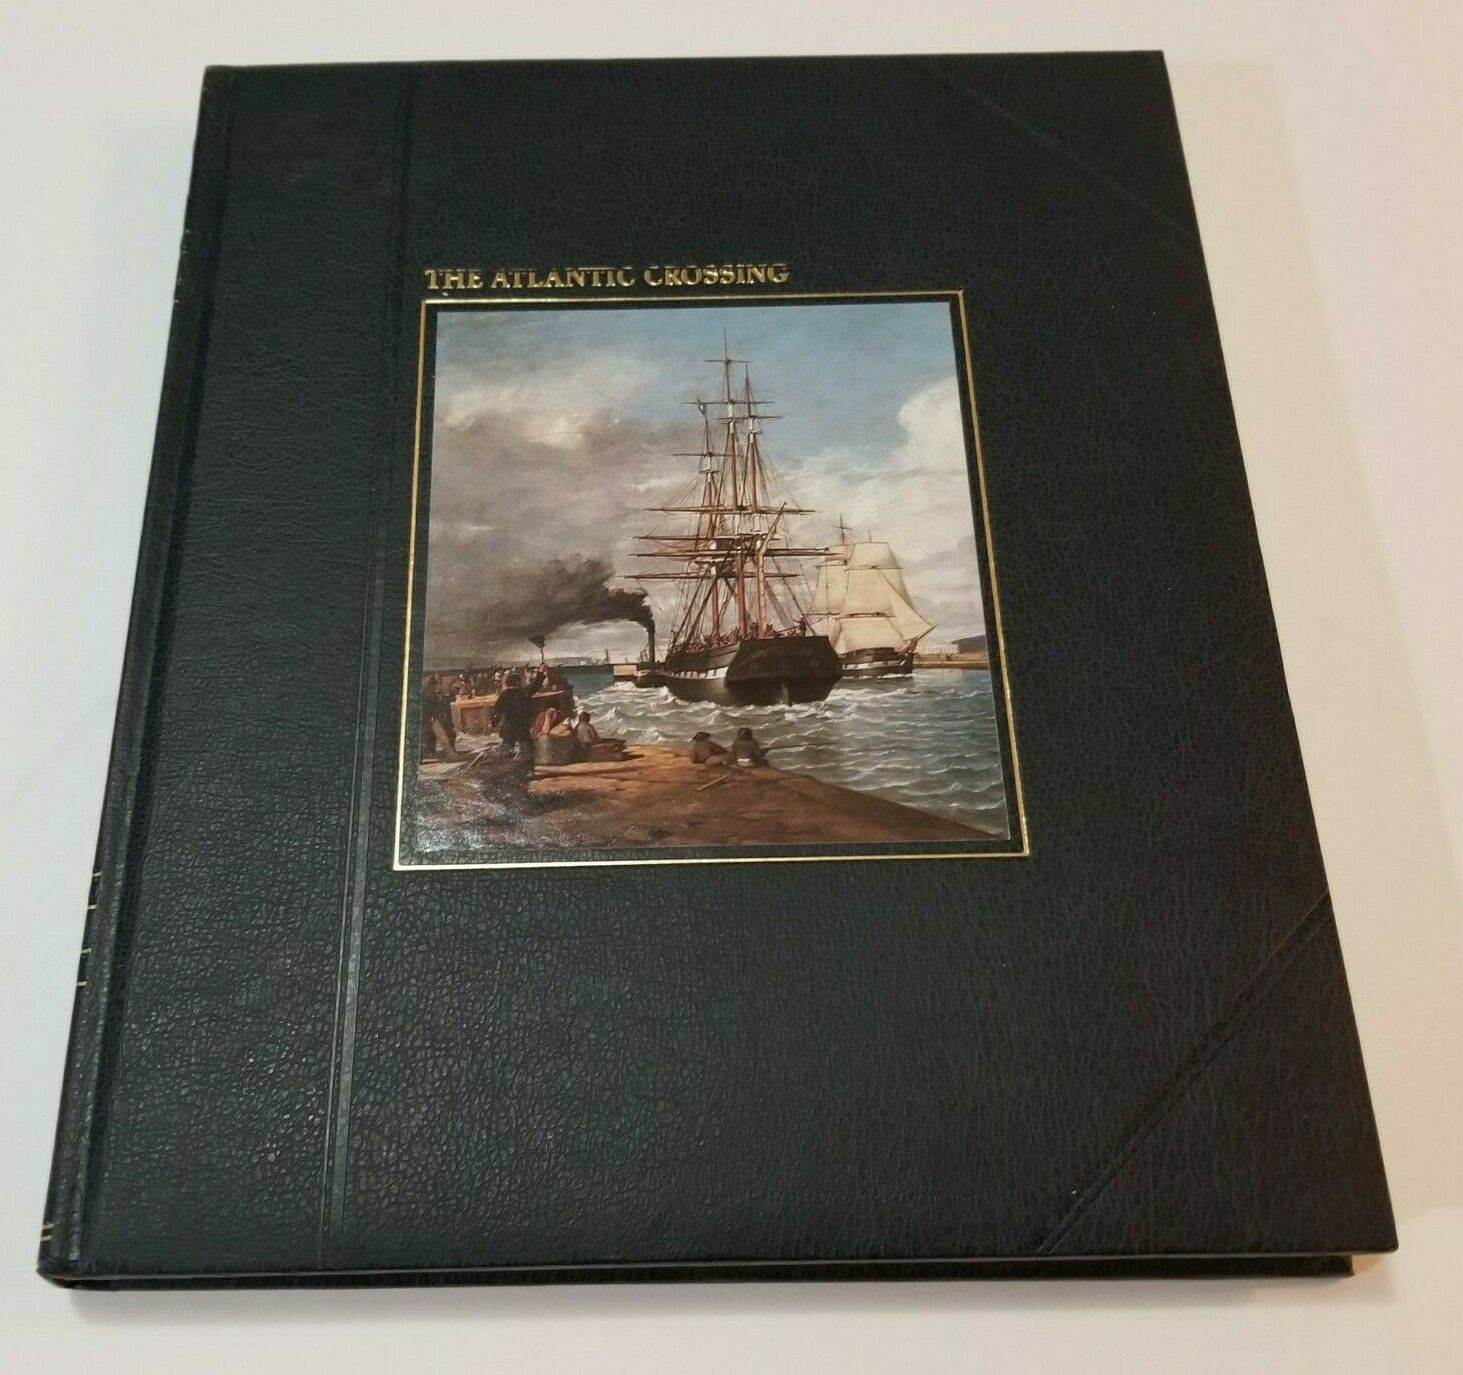 The Atlantic Crossing TIME-LIFE Books – The Seafarers Series 1979 Hardcover |